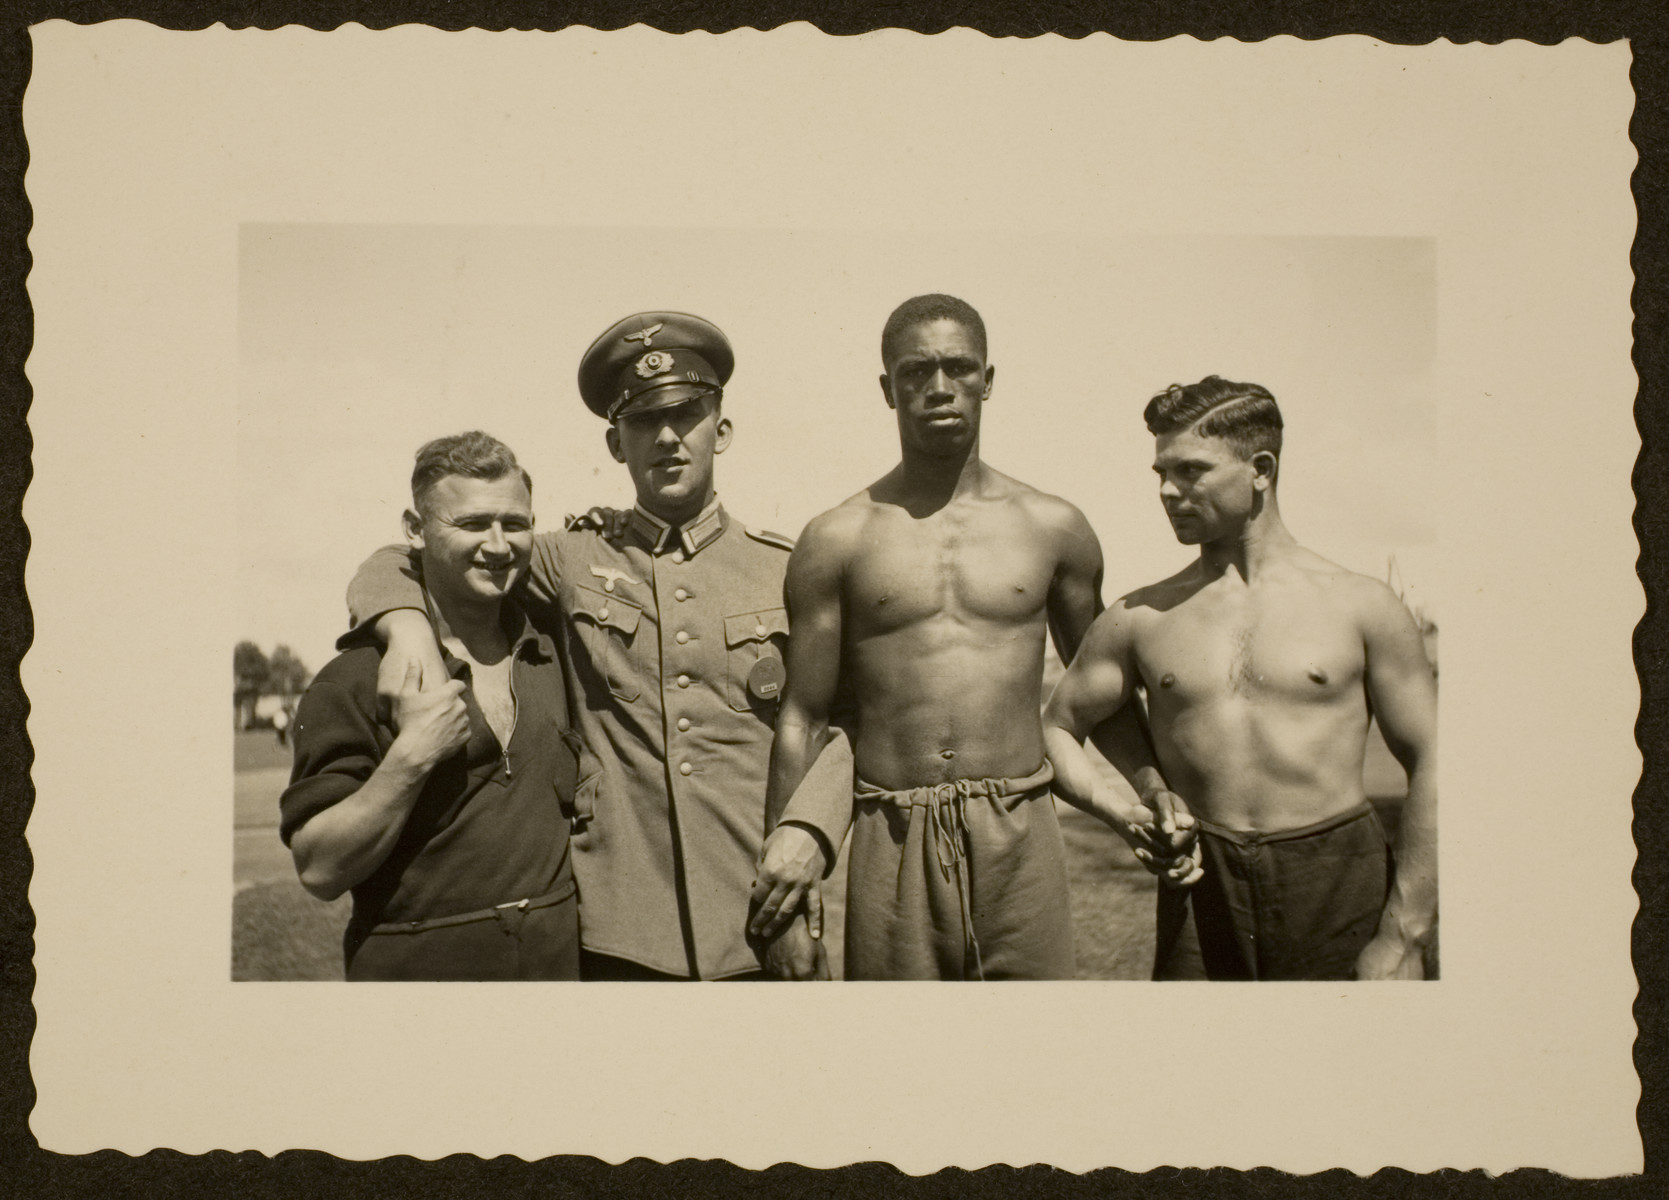 A German in an Army uniform poses with Olympic athletes.  Pictured second from the right is American track and field athlete John Woodruff.  Fritz Bezzelt (father of the donor) is pictured on the far right.